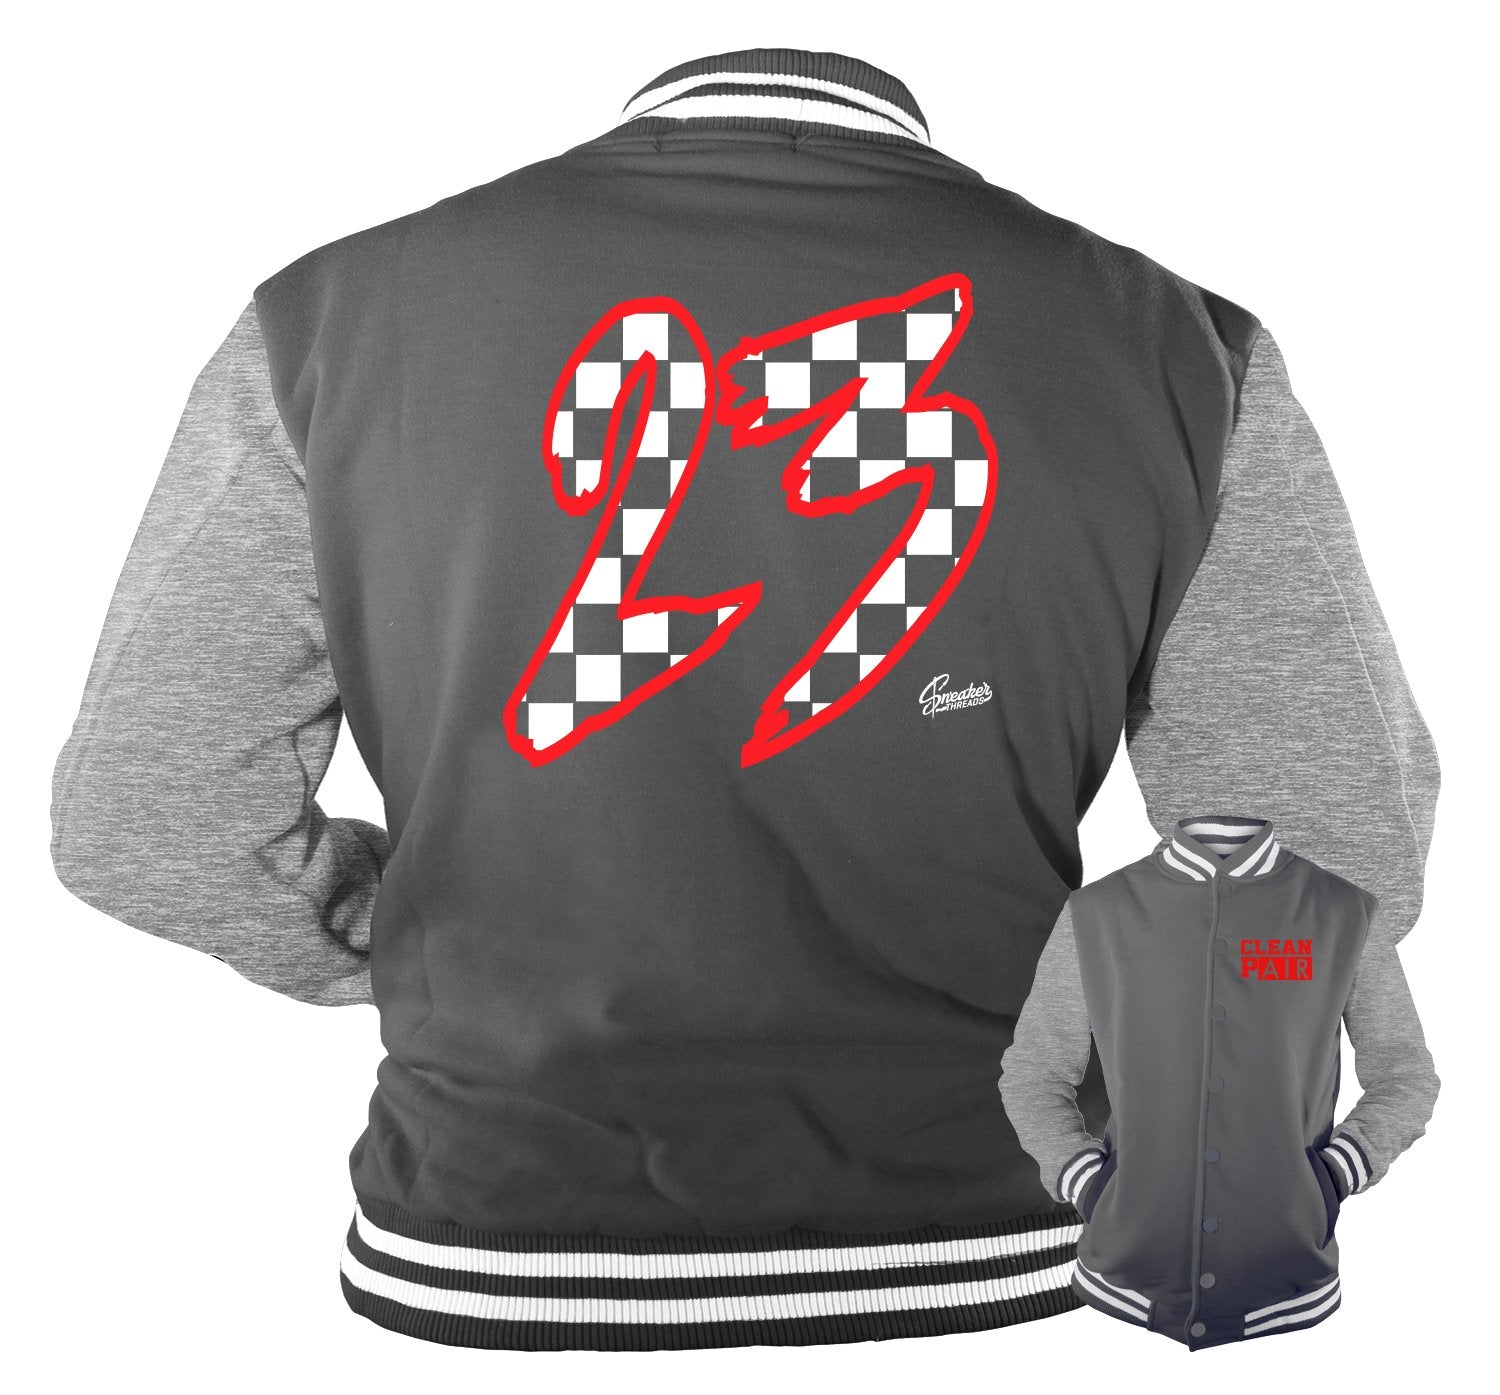 Jacket collection for men designed to match the Jordan 12 dark grey sneakers